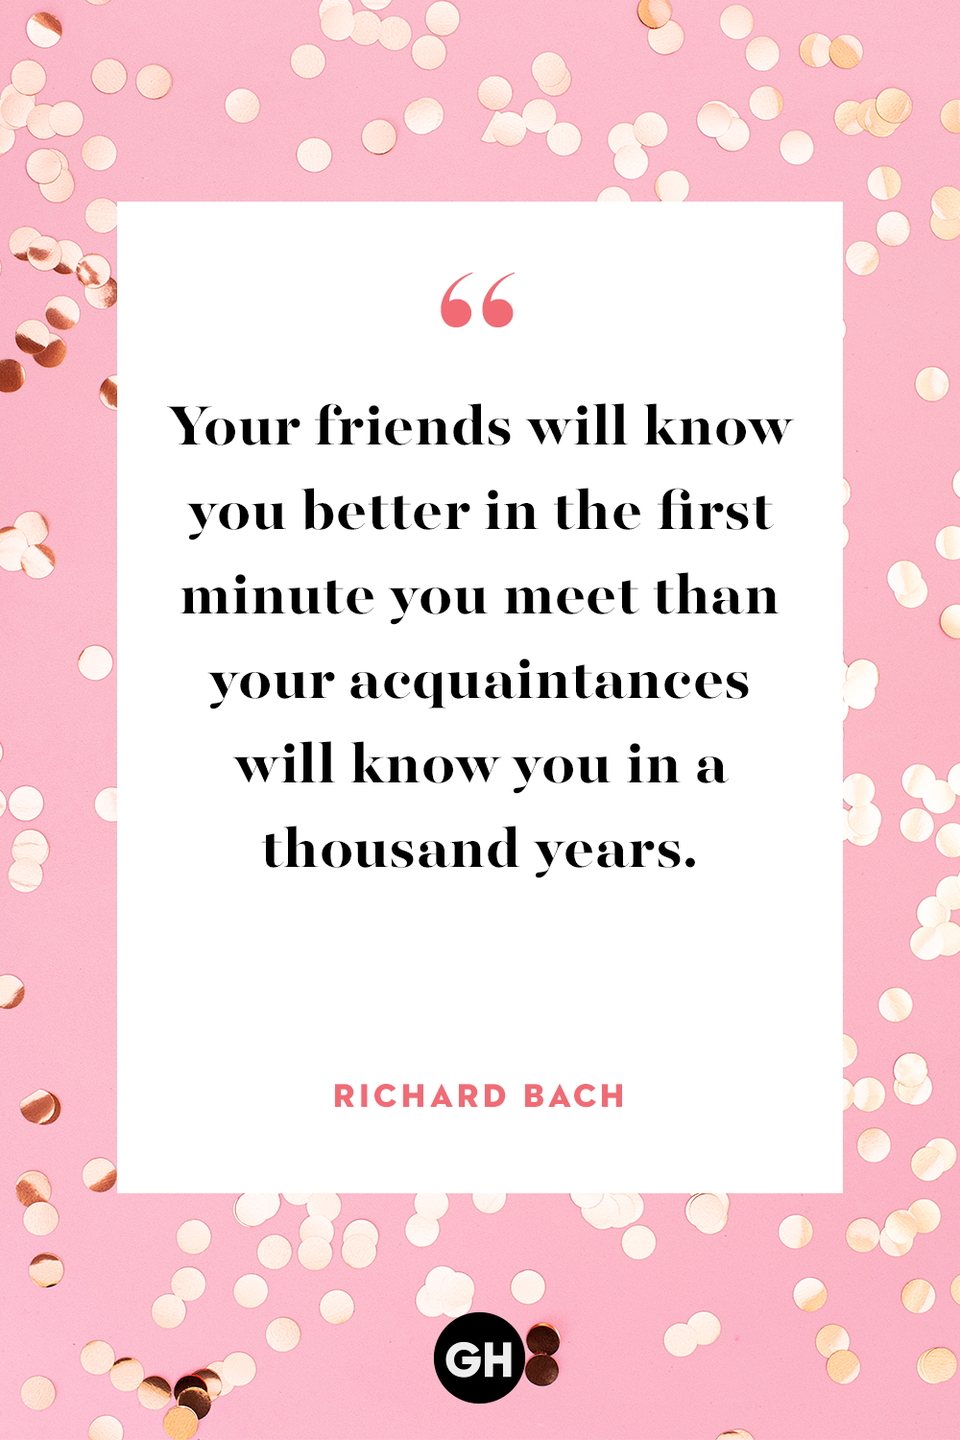 "<p>Your friends will know you better in the first minute you meet than your acquaintances will know you in a thousand years. </p><p><strong>RELATED: </strong><a href=""https://www.goodhousekeeping.com/holidays/valentines-day-ideas/a30472475/galentines-day-quotes-instagram-captions/"" rel=""nofollow noopener"" target=""_blank"" data-ylk=""slk:45 Cute Galentine's Day Quotes and Instagram Captions"" class=""link rapid-noclick-resp"">45 Cute Galentine's Day Quotes and Instagram Captions</a></p>"